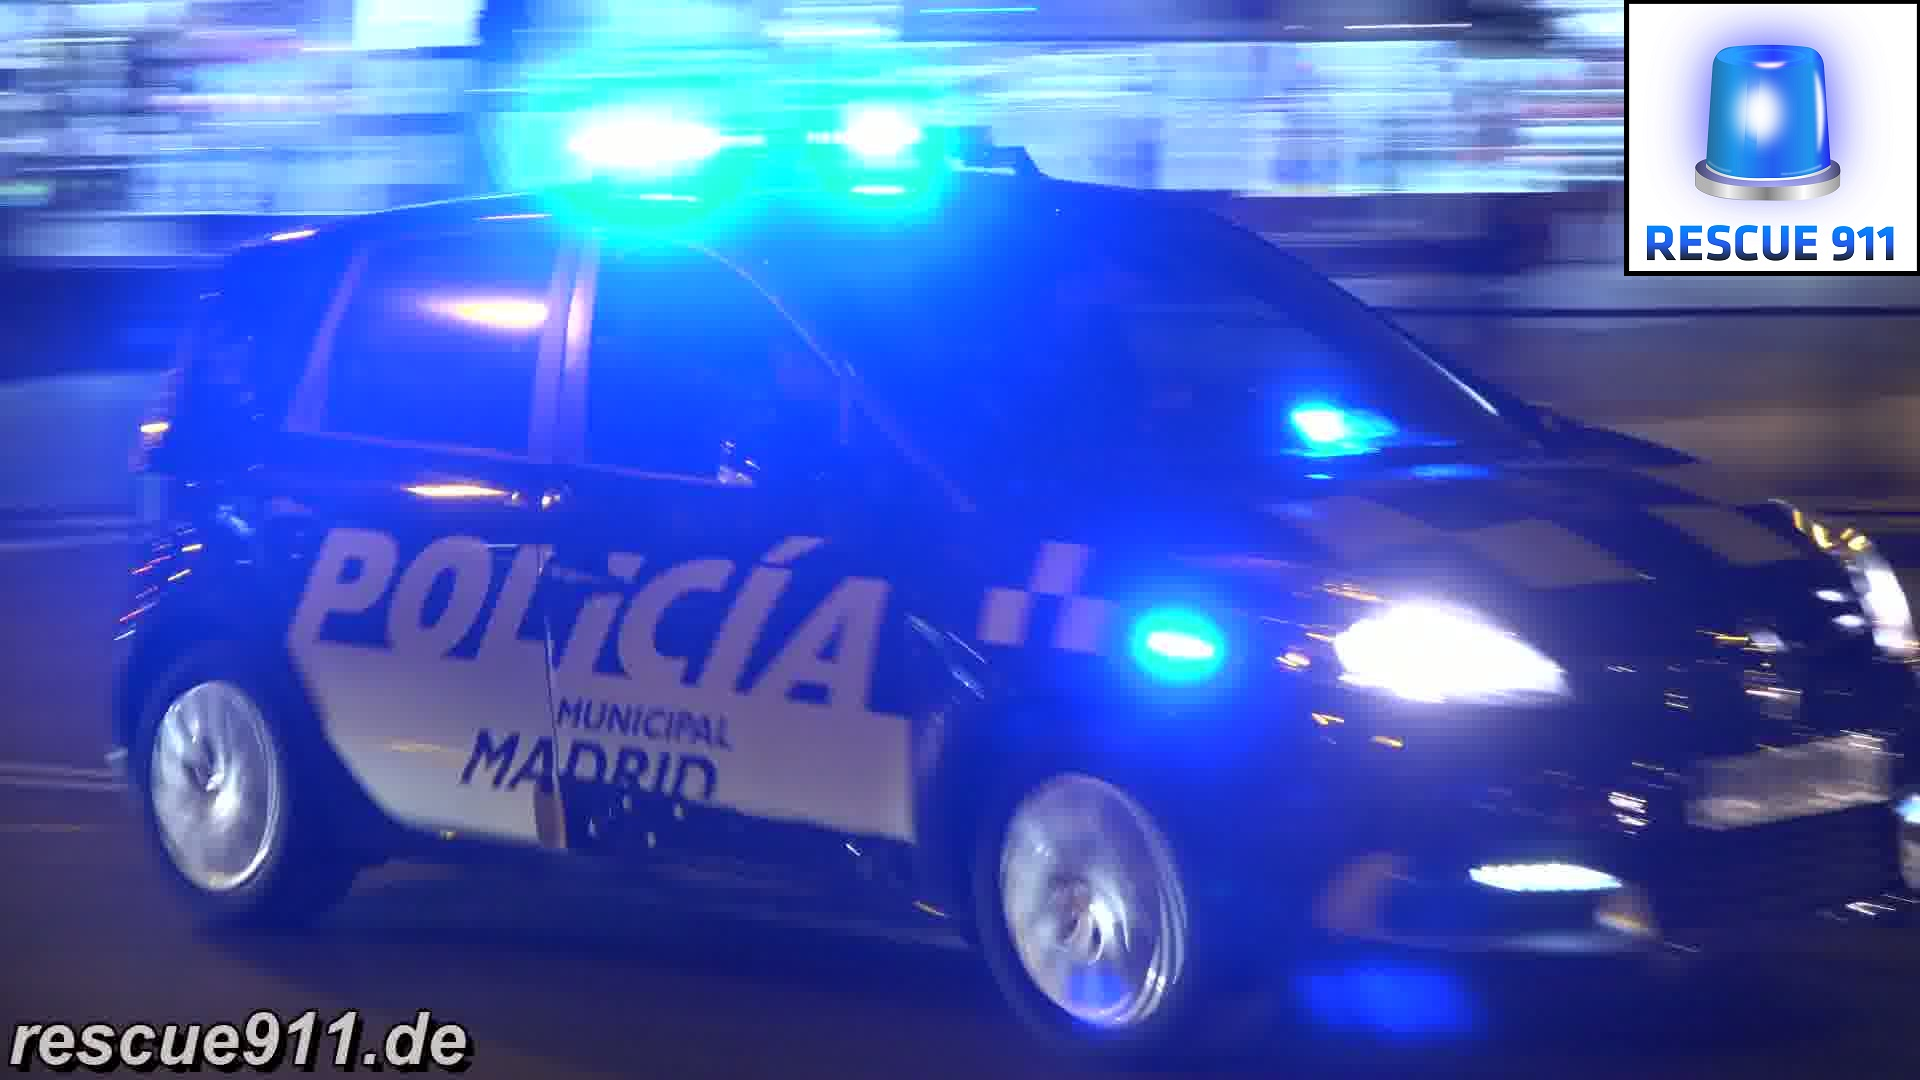 Policía Municipal Madrid (collection) (stream)